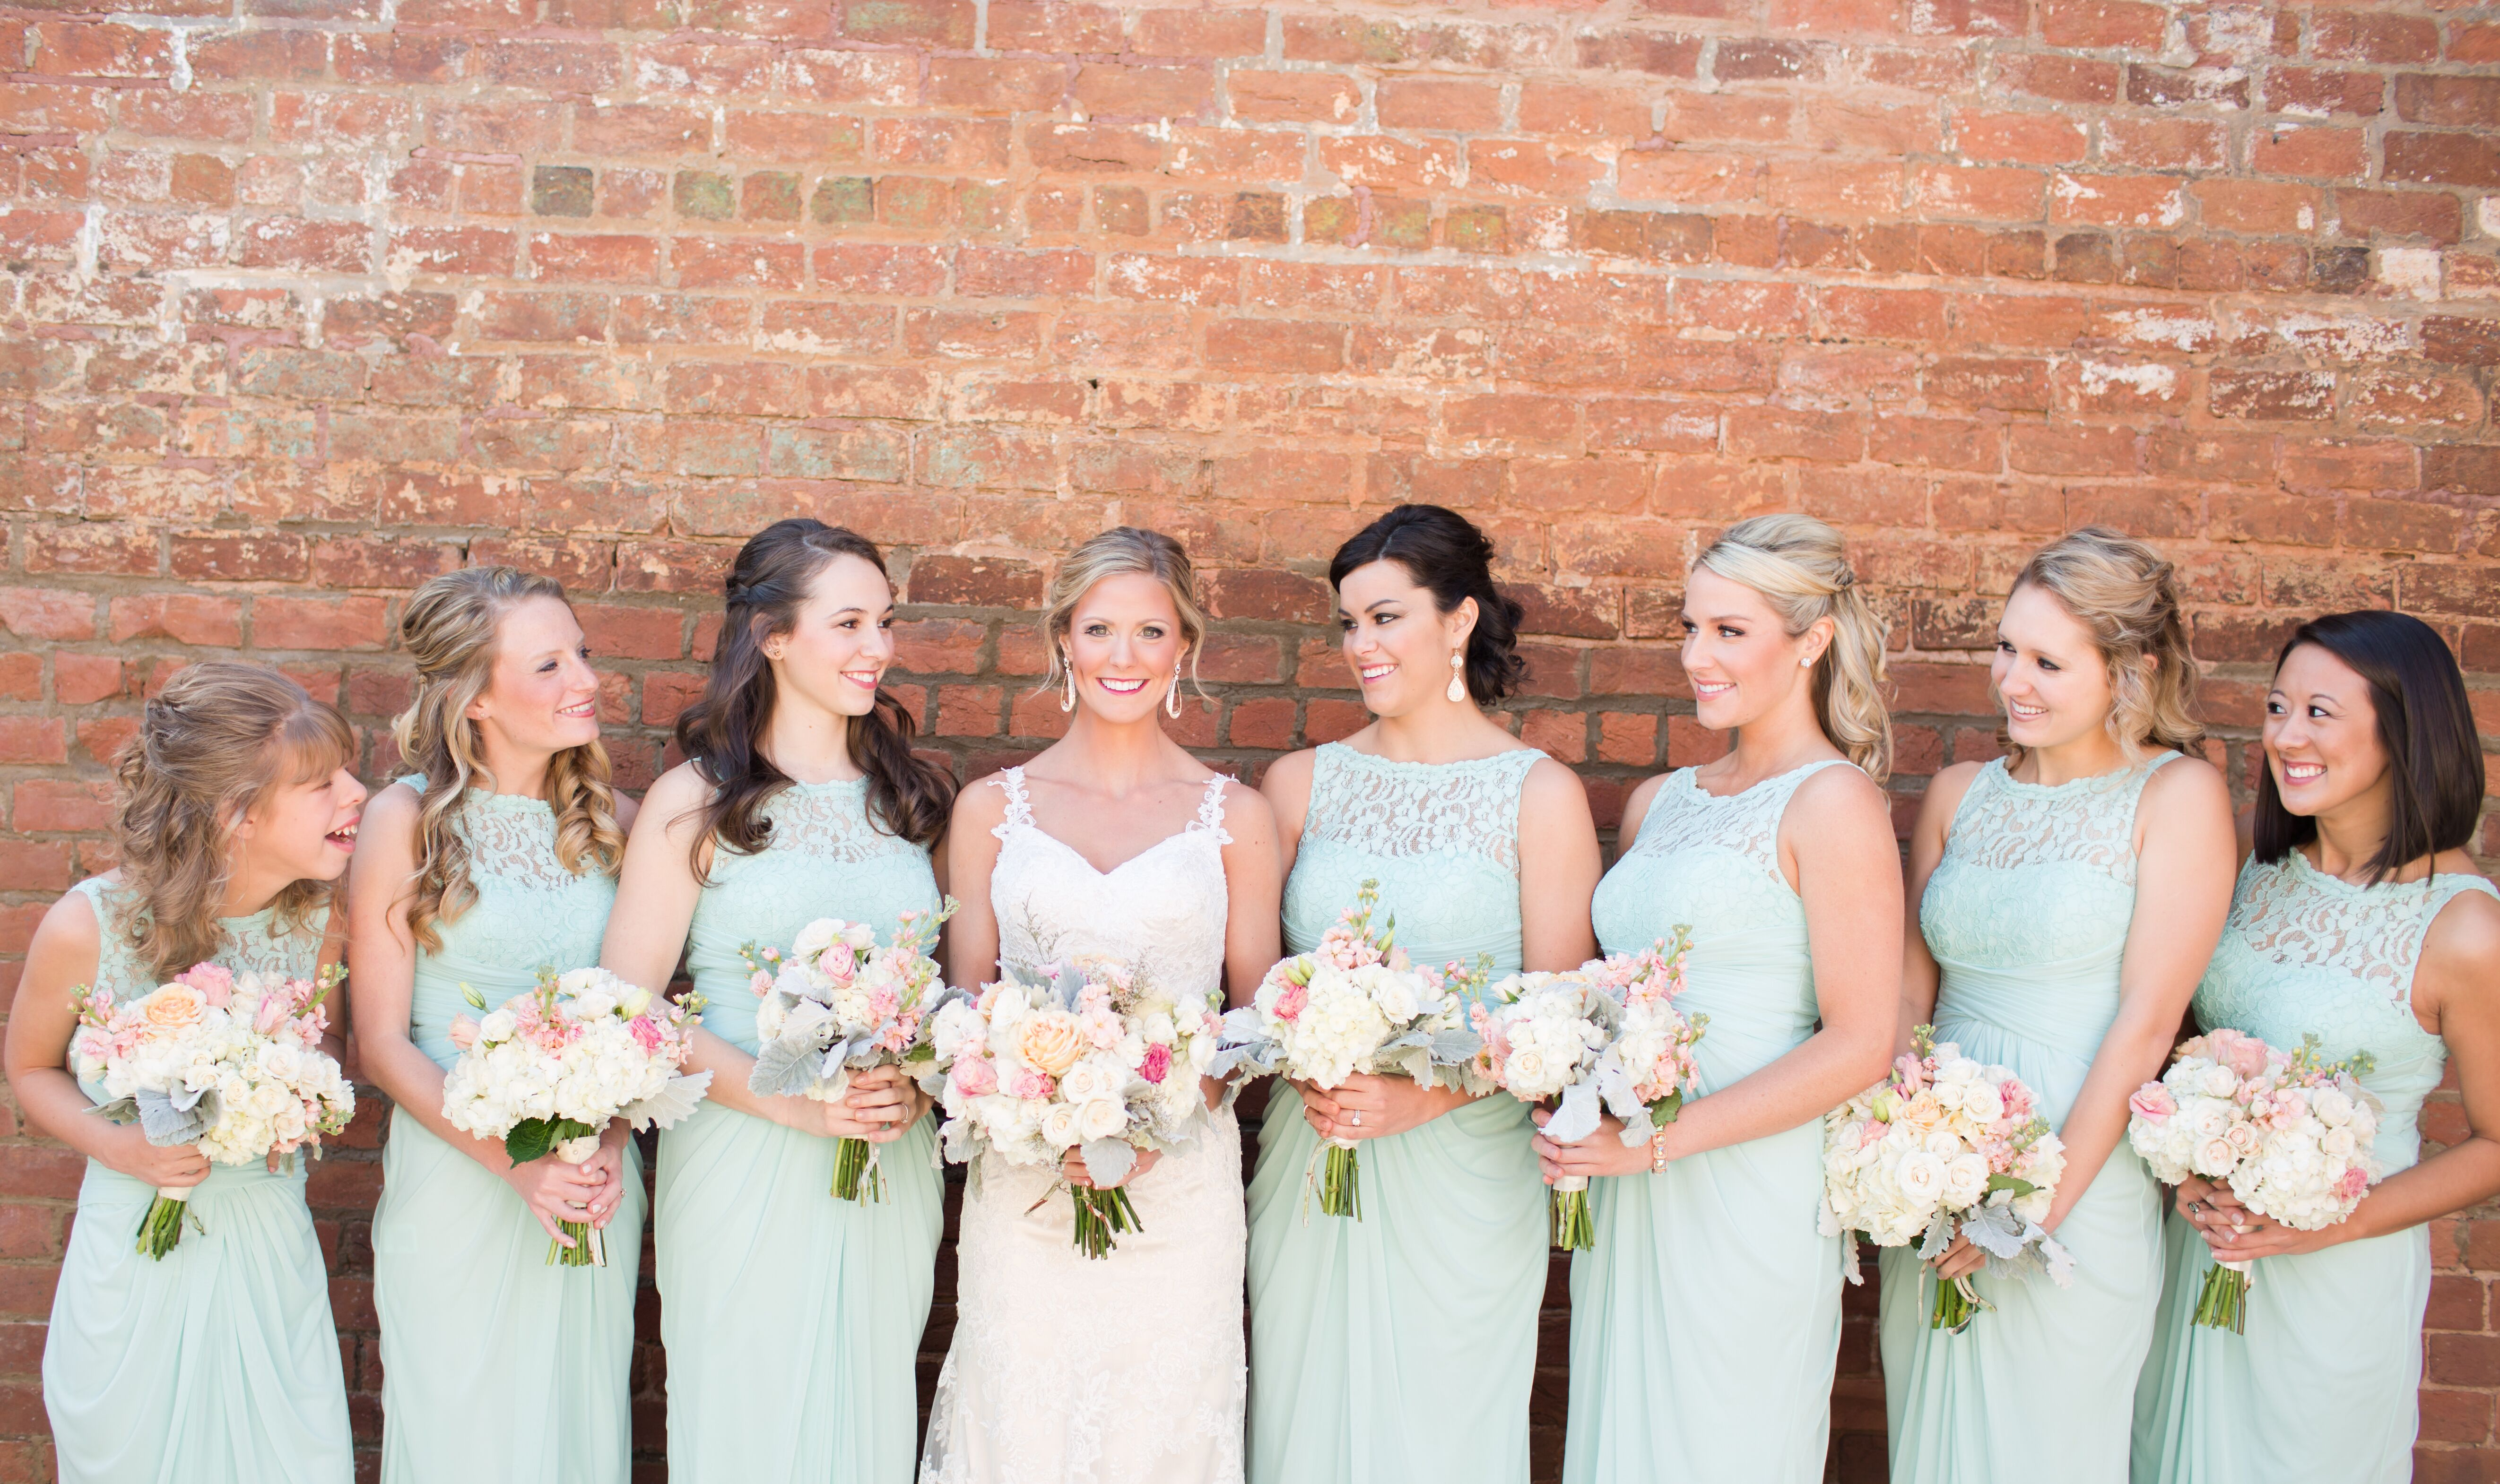 Mint David's Bridal Bridesmaid Dresses with Lace Illusion Neckline